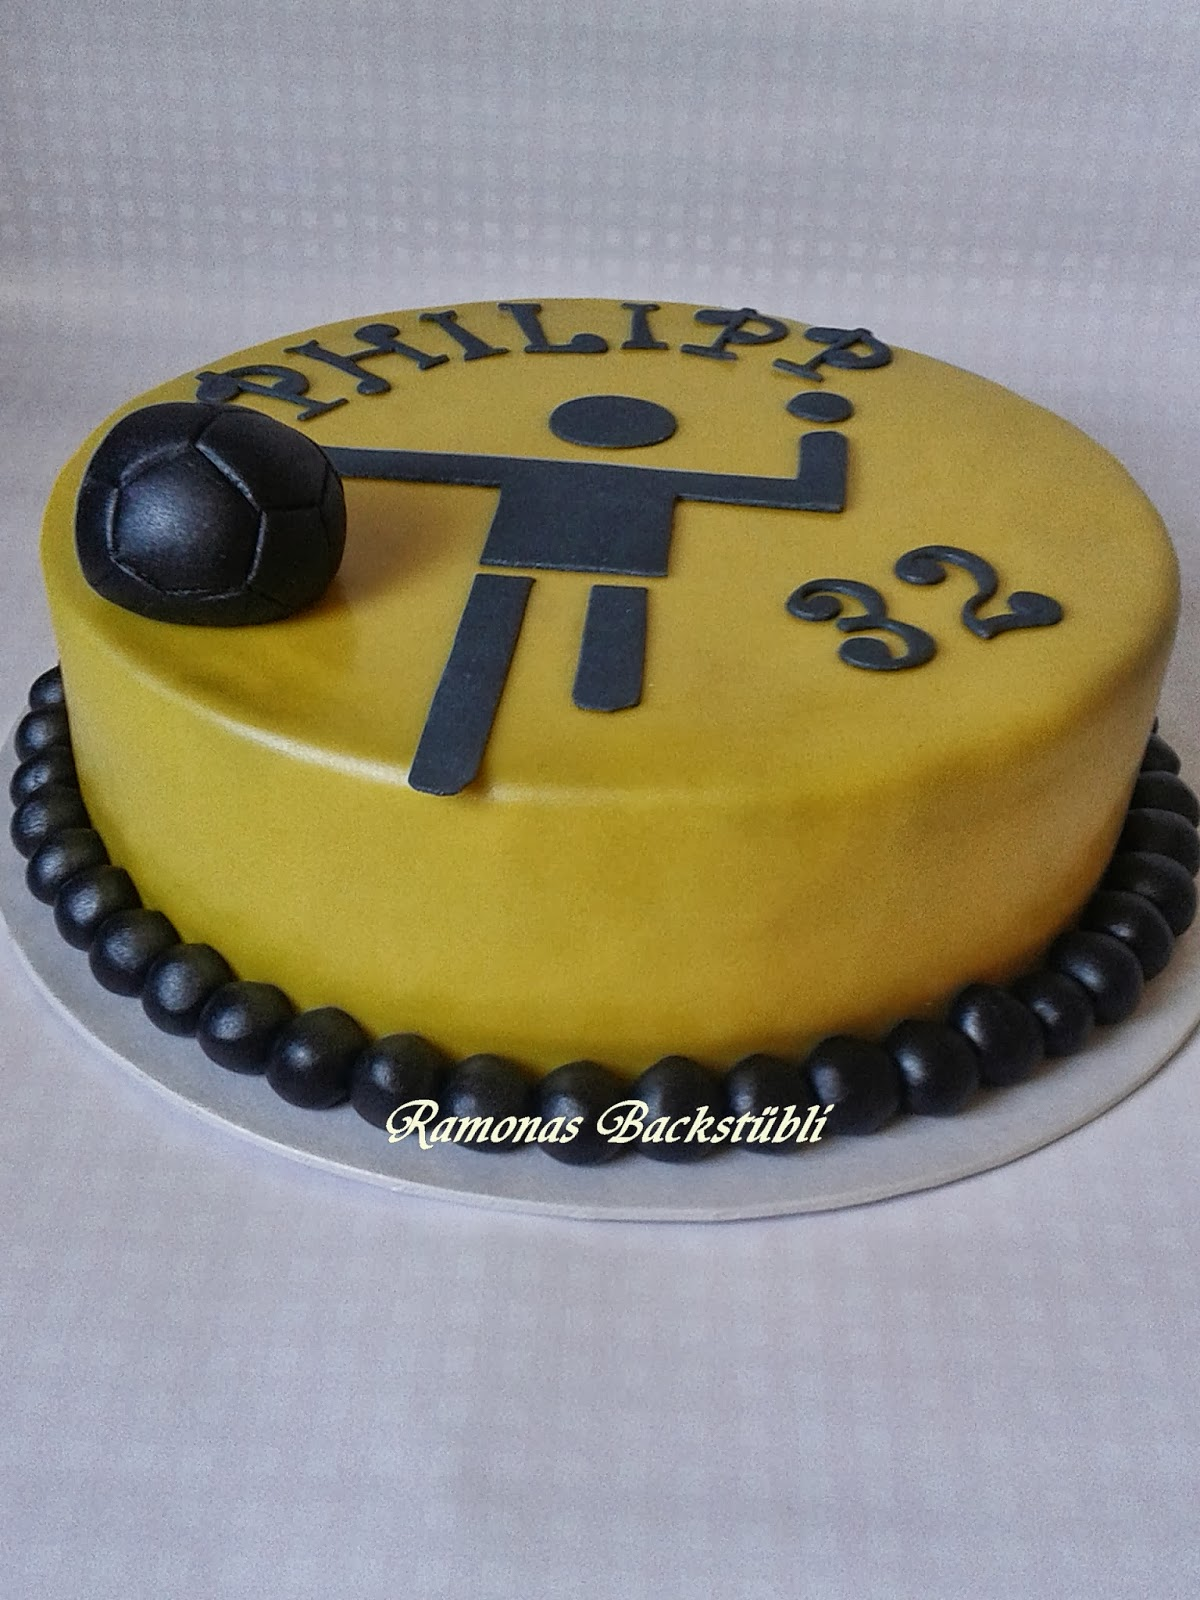 Ramonas Backstubli Handball Torte